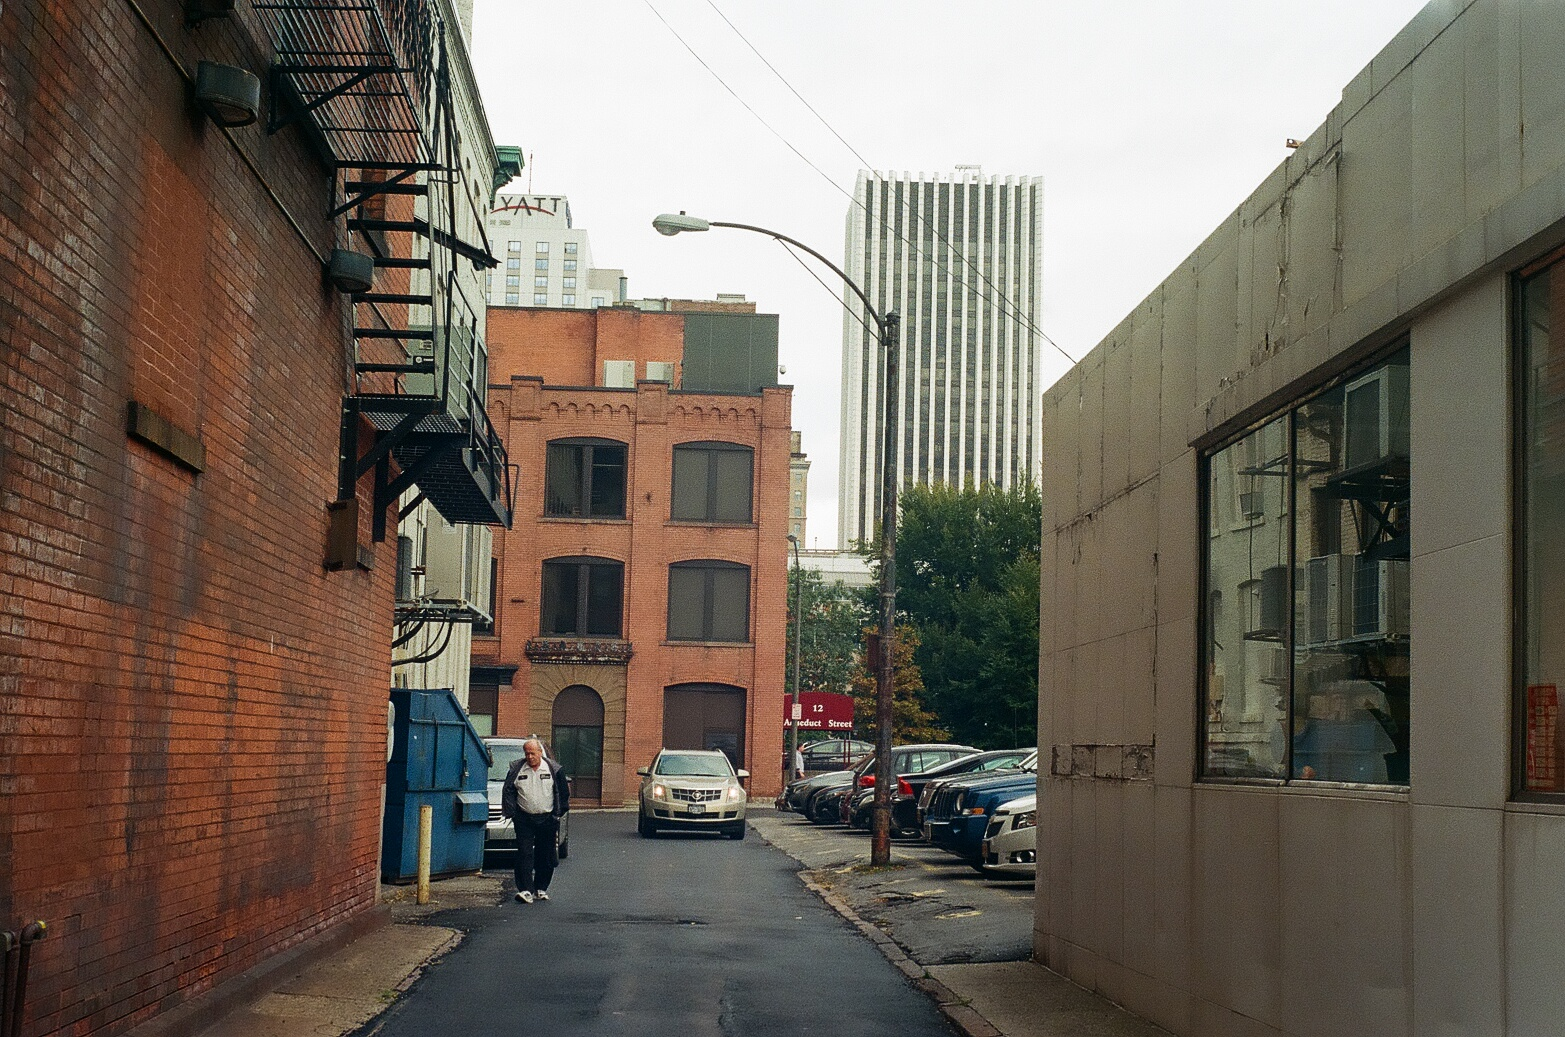 Rochester, NY alley